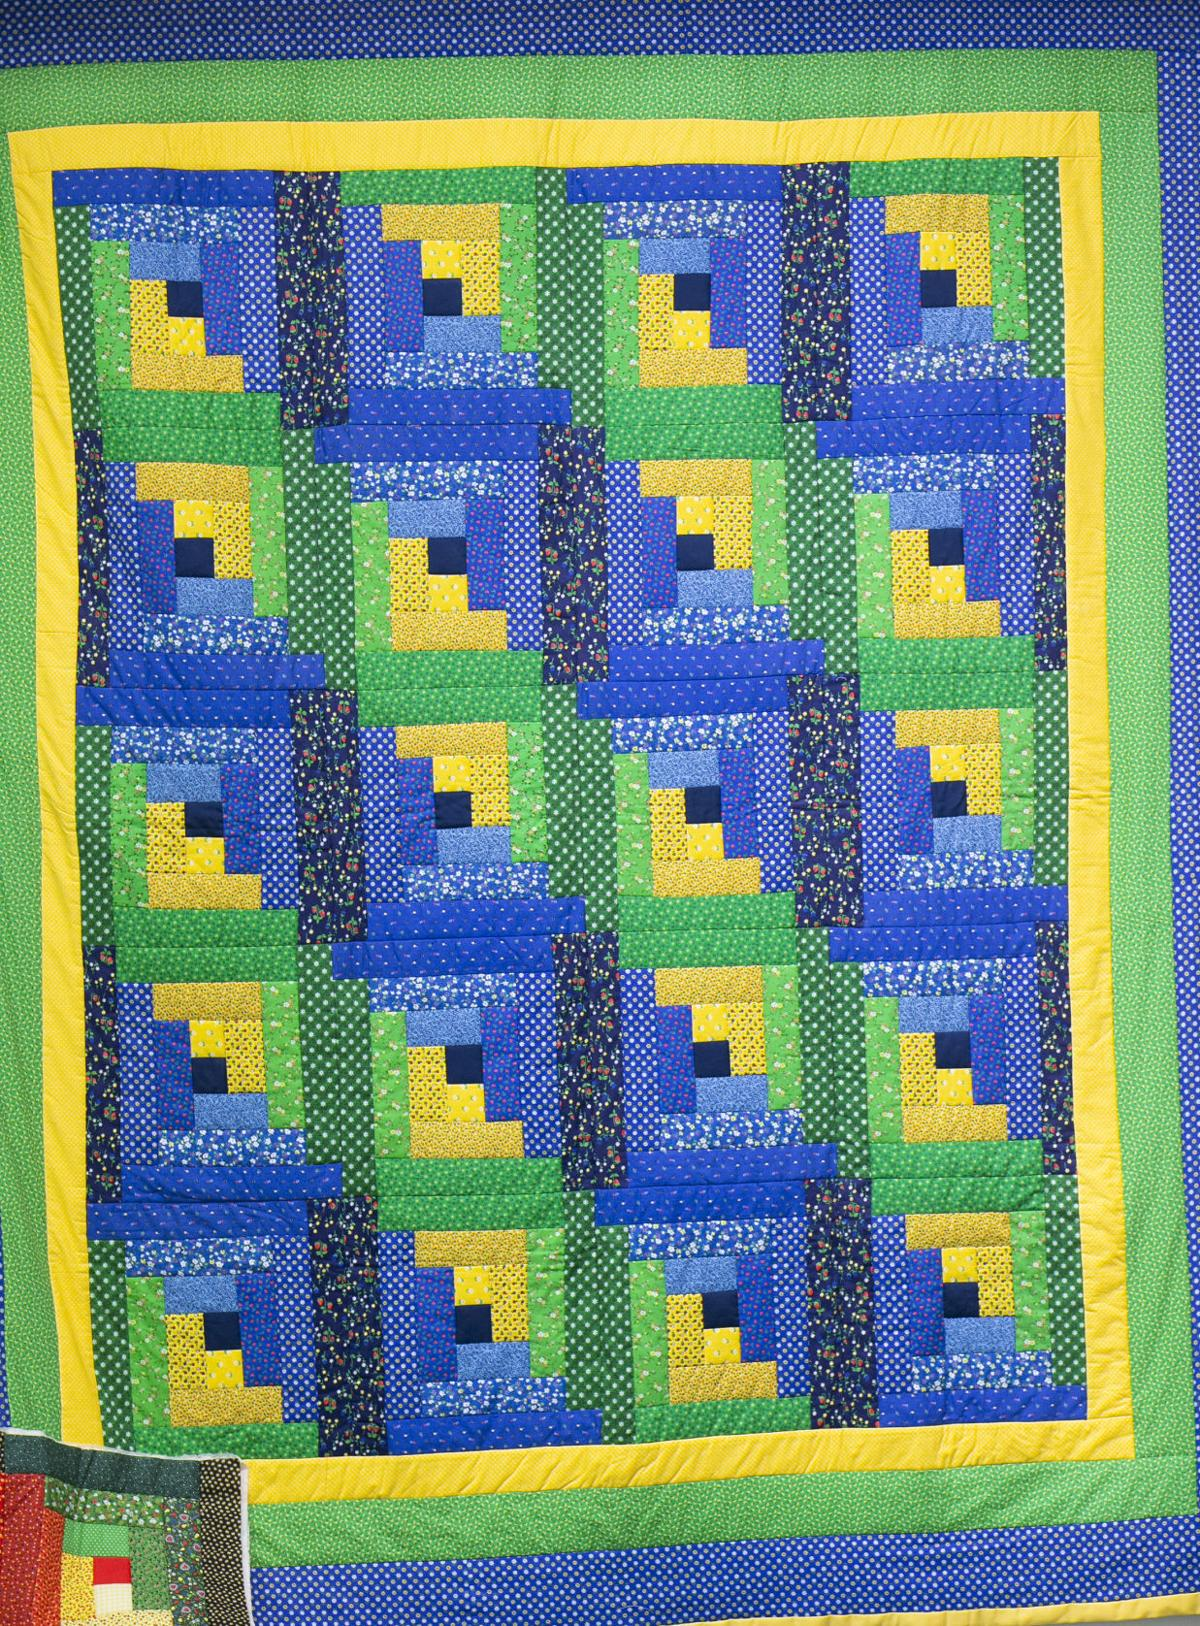 The quilt that changed the game